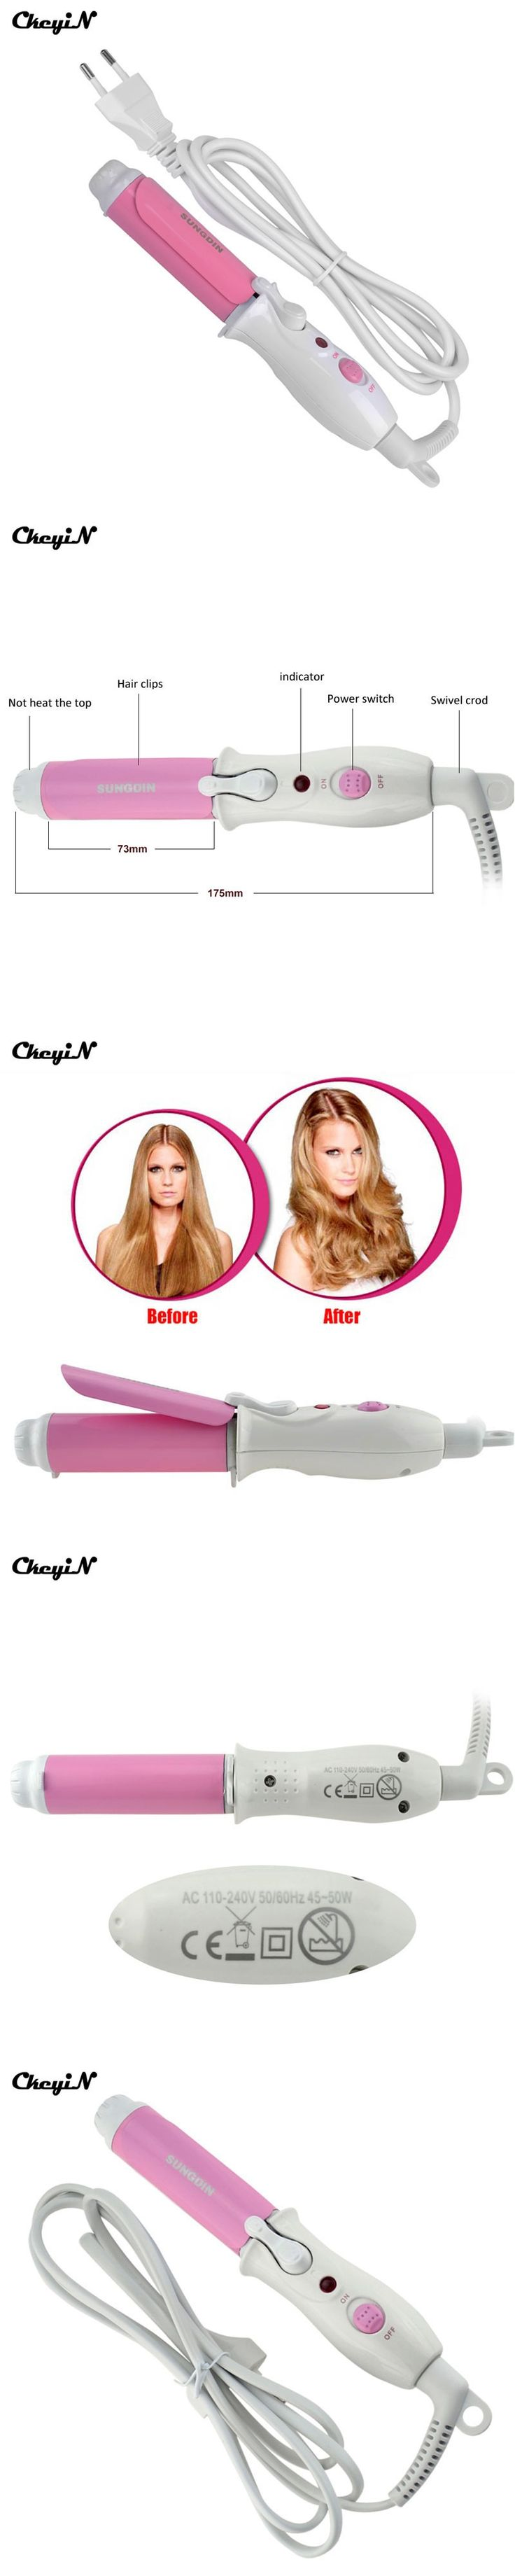 CkeyiN Mini Portable Electric Hair Curler Personal Hair Styling Tools Hair Waver Wave Machine Professional Hair Curling Iron